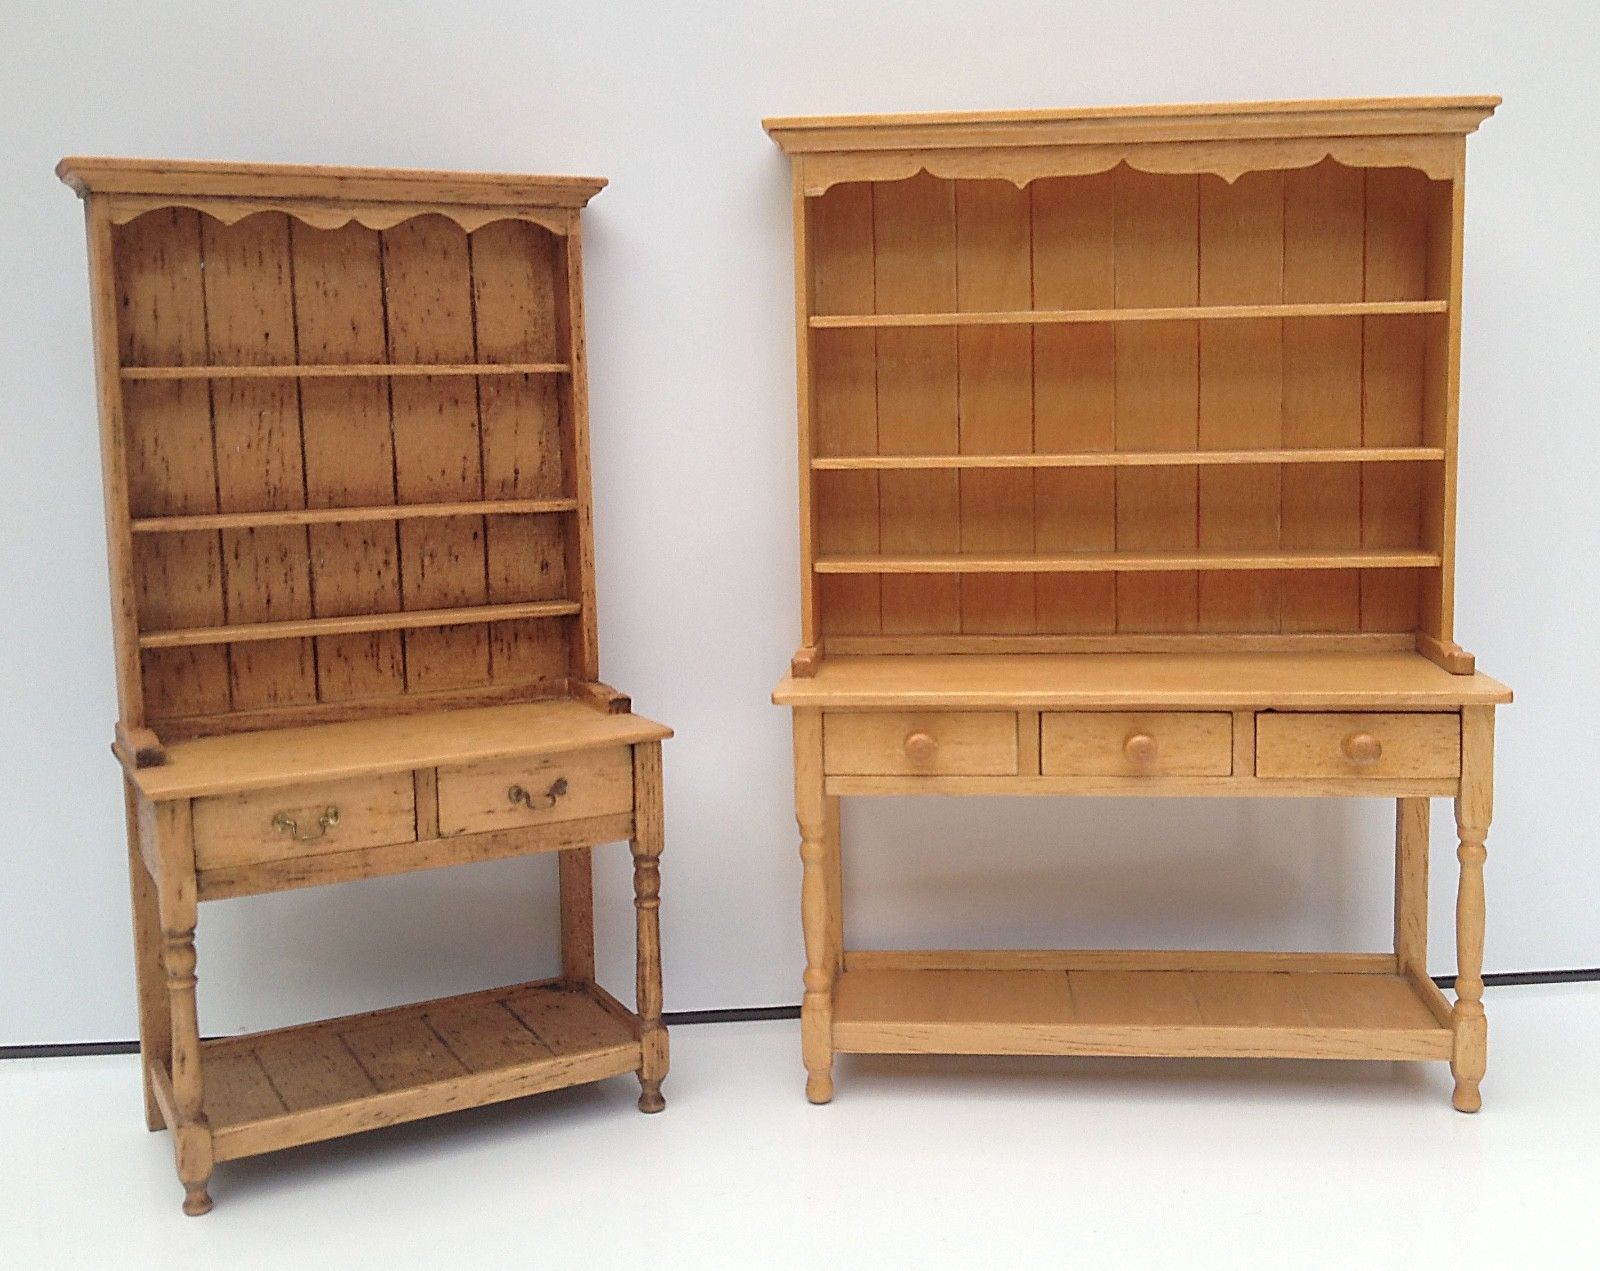 Vintage Jane Newman Small Pine Dresser Aged Classic Dolls House